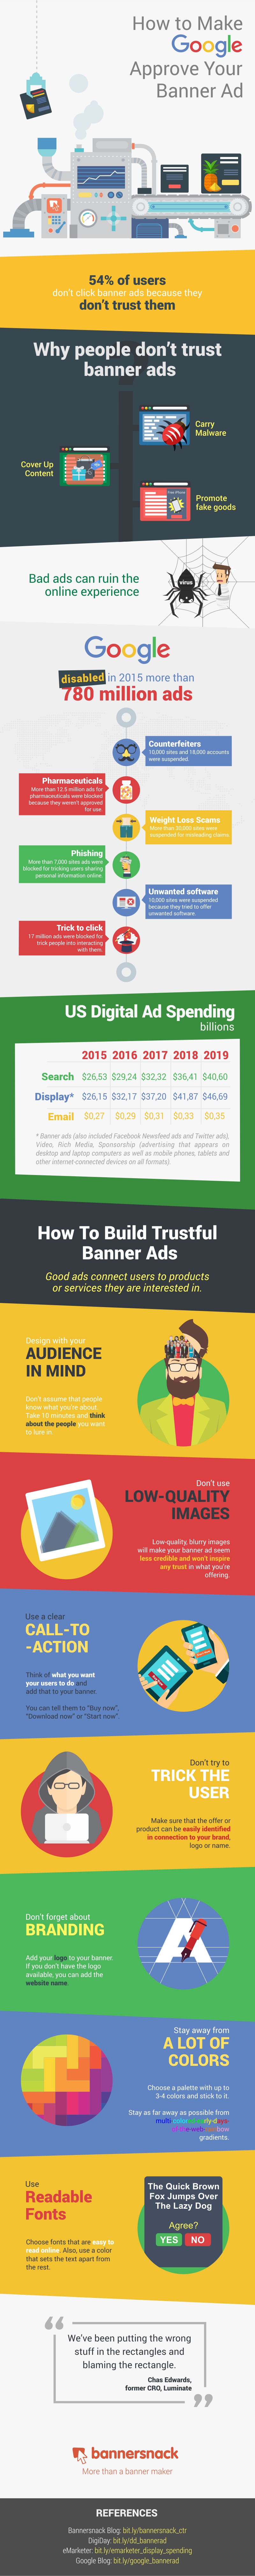 Make Google Approve Your Banner Ad